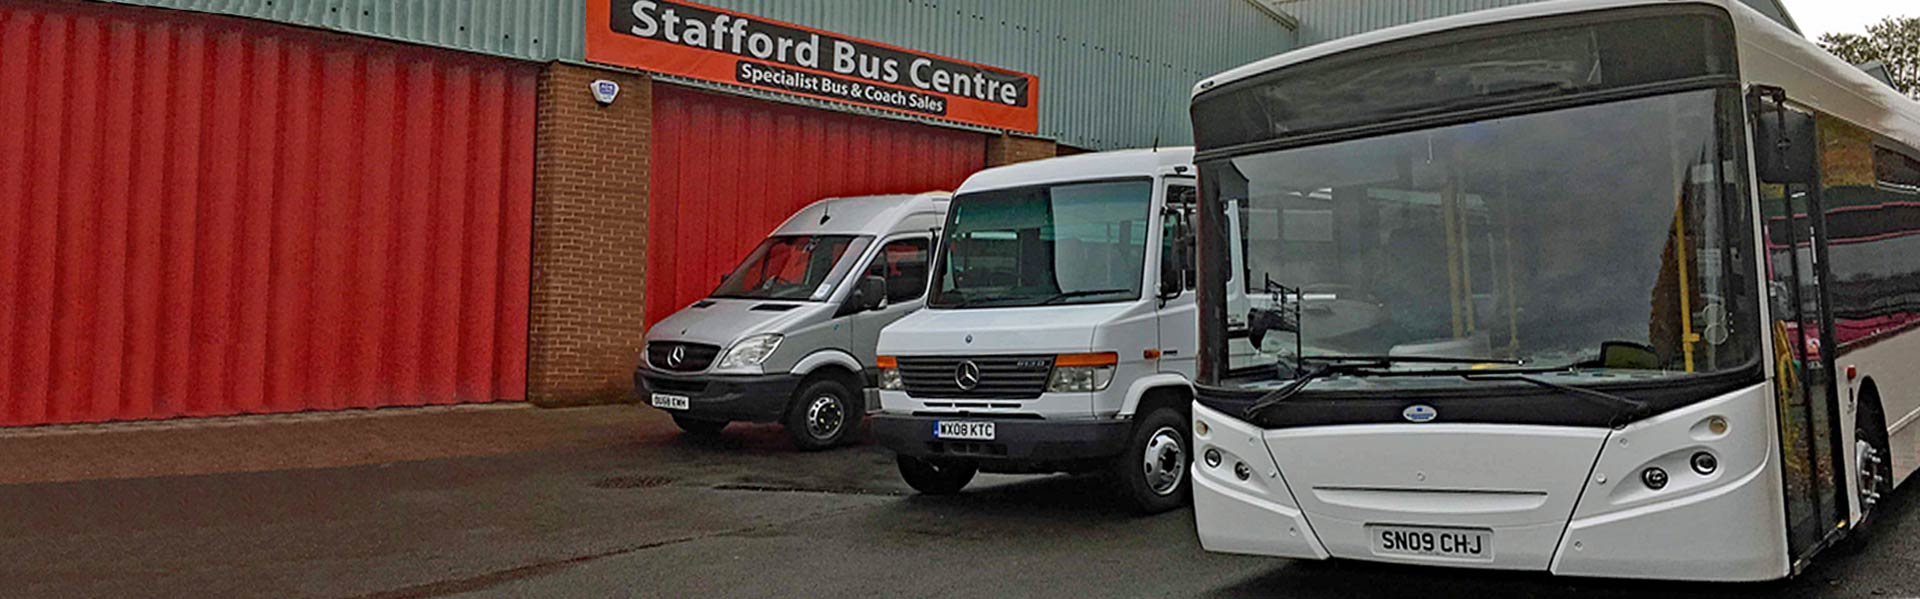 Contact Stafford Bus Centre